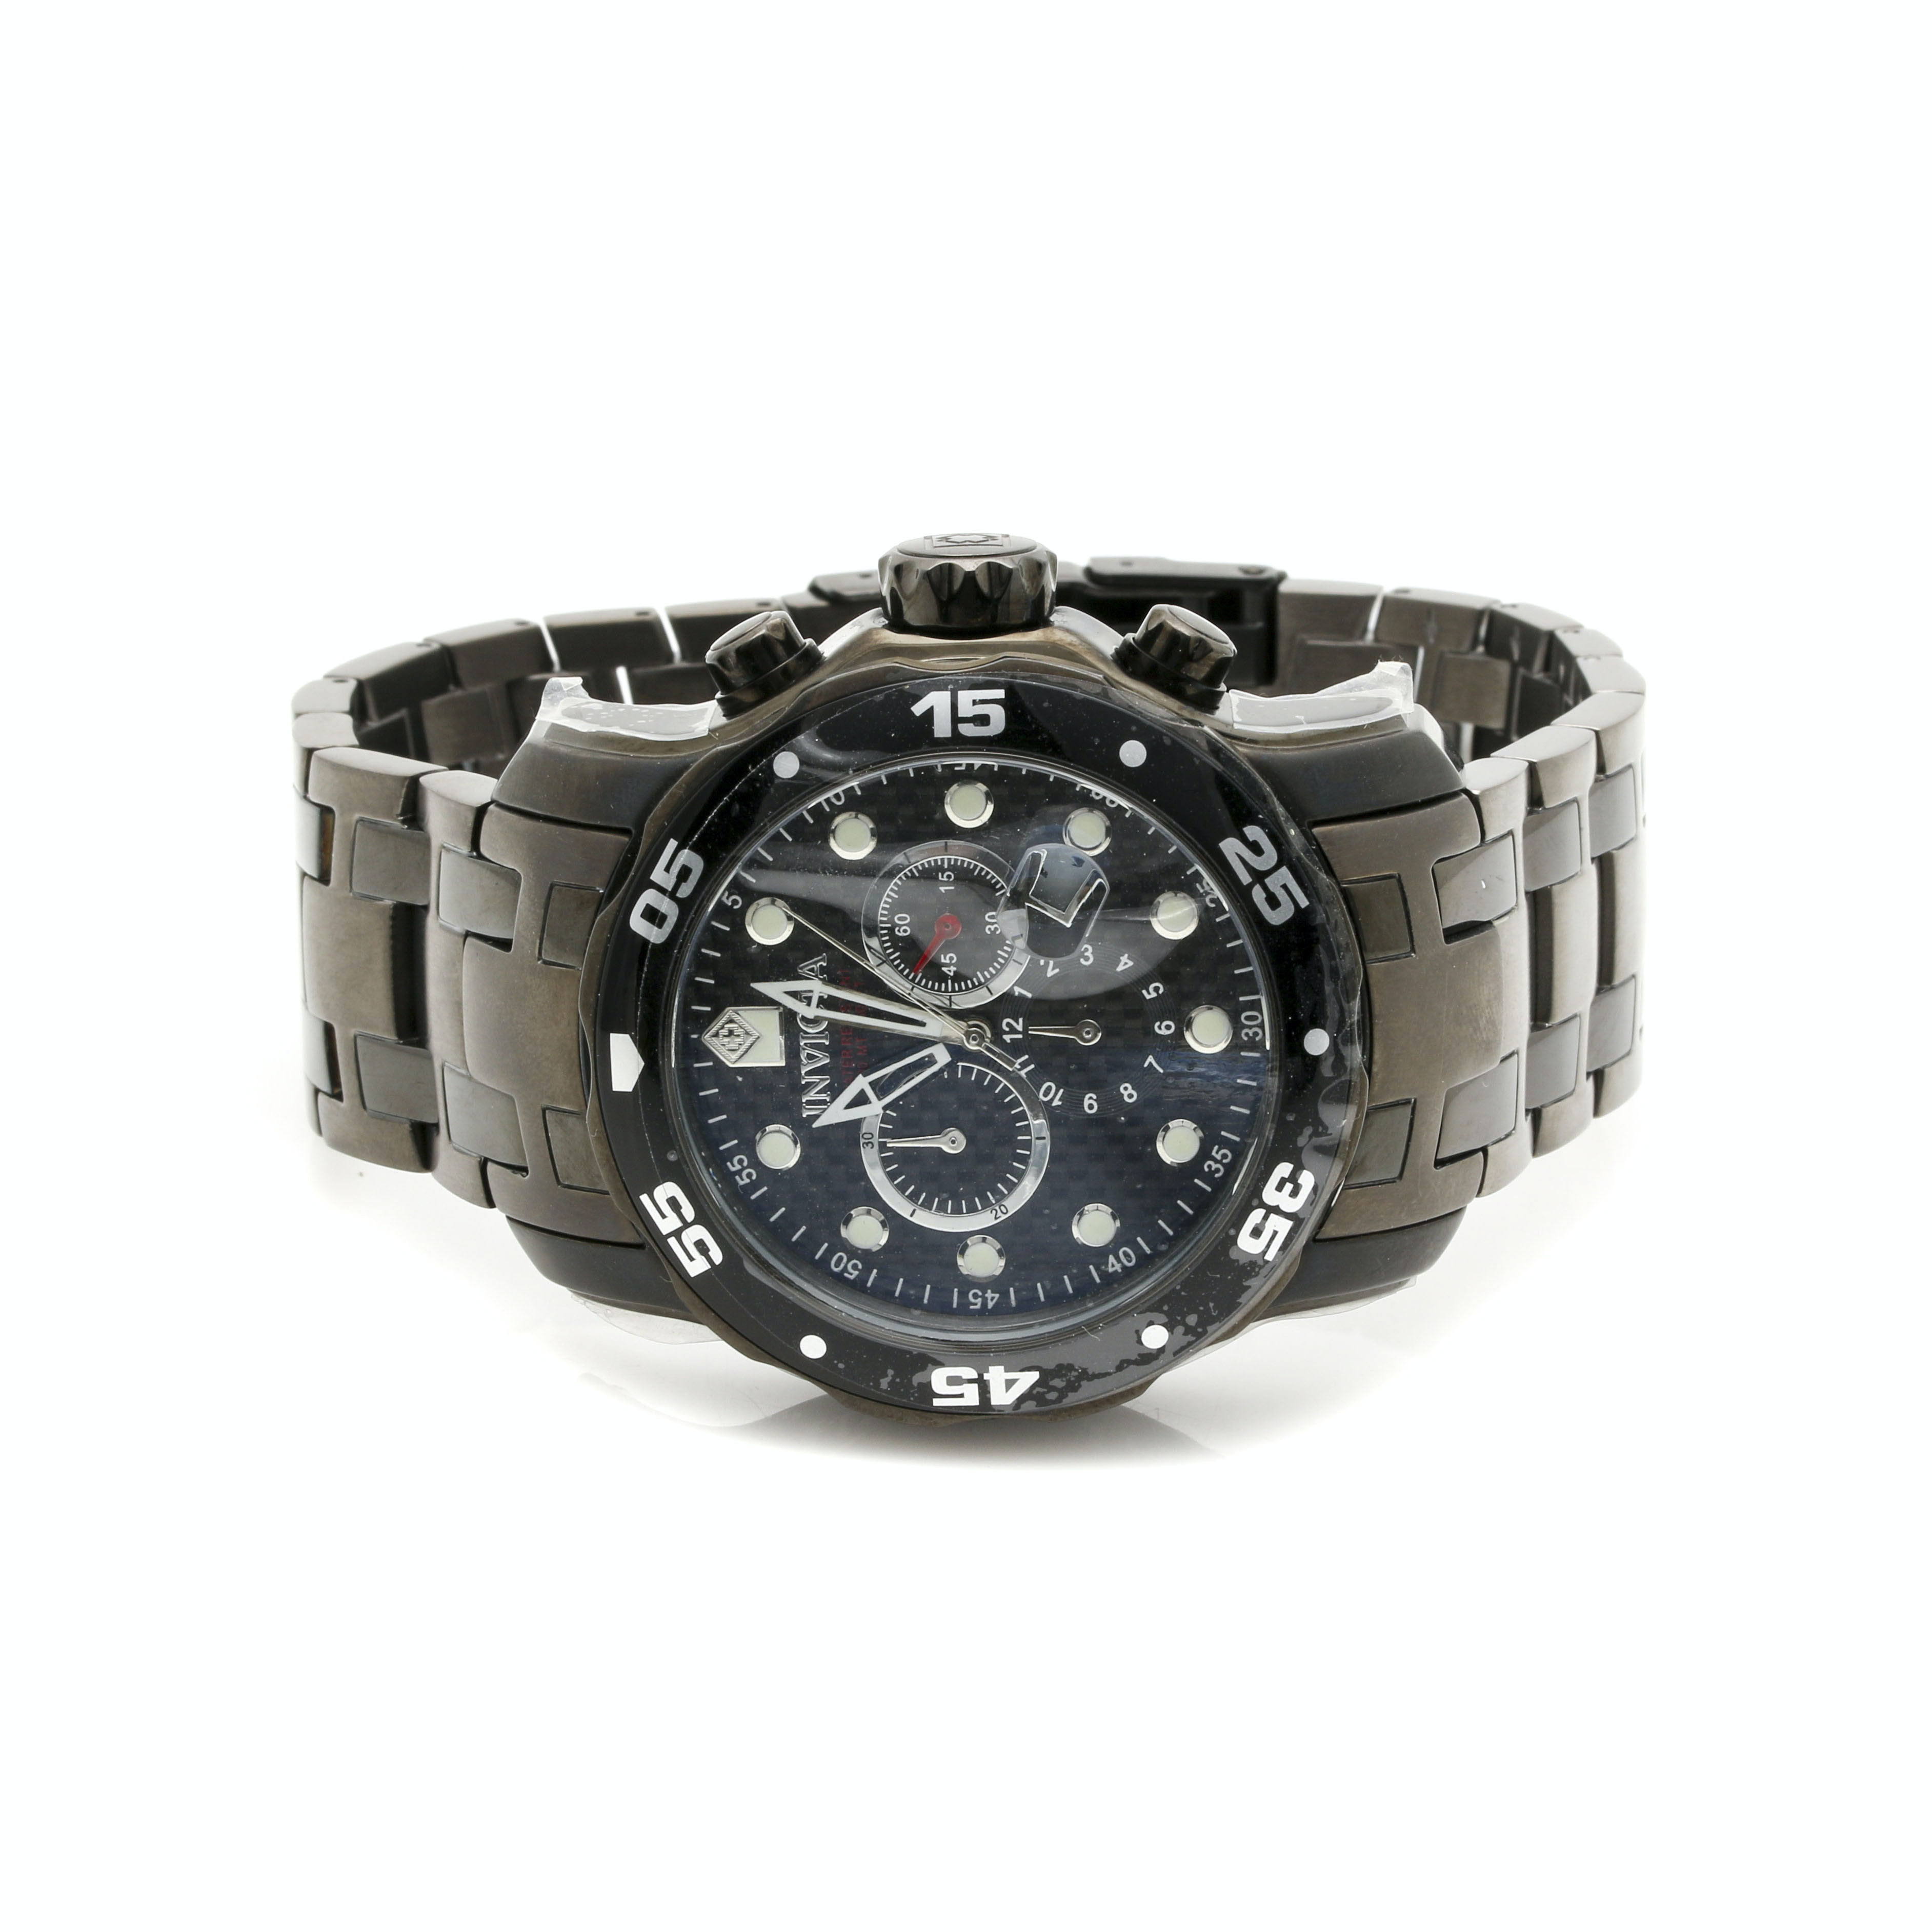 "Invicta ""Pro Diver"" Chronograph Wristwatch"